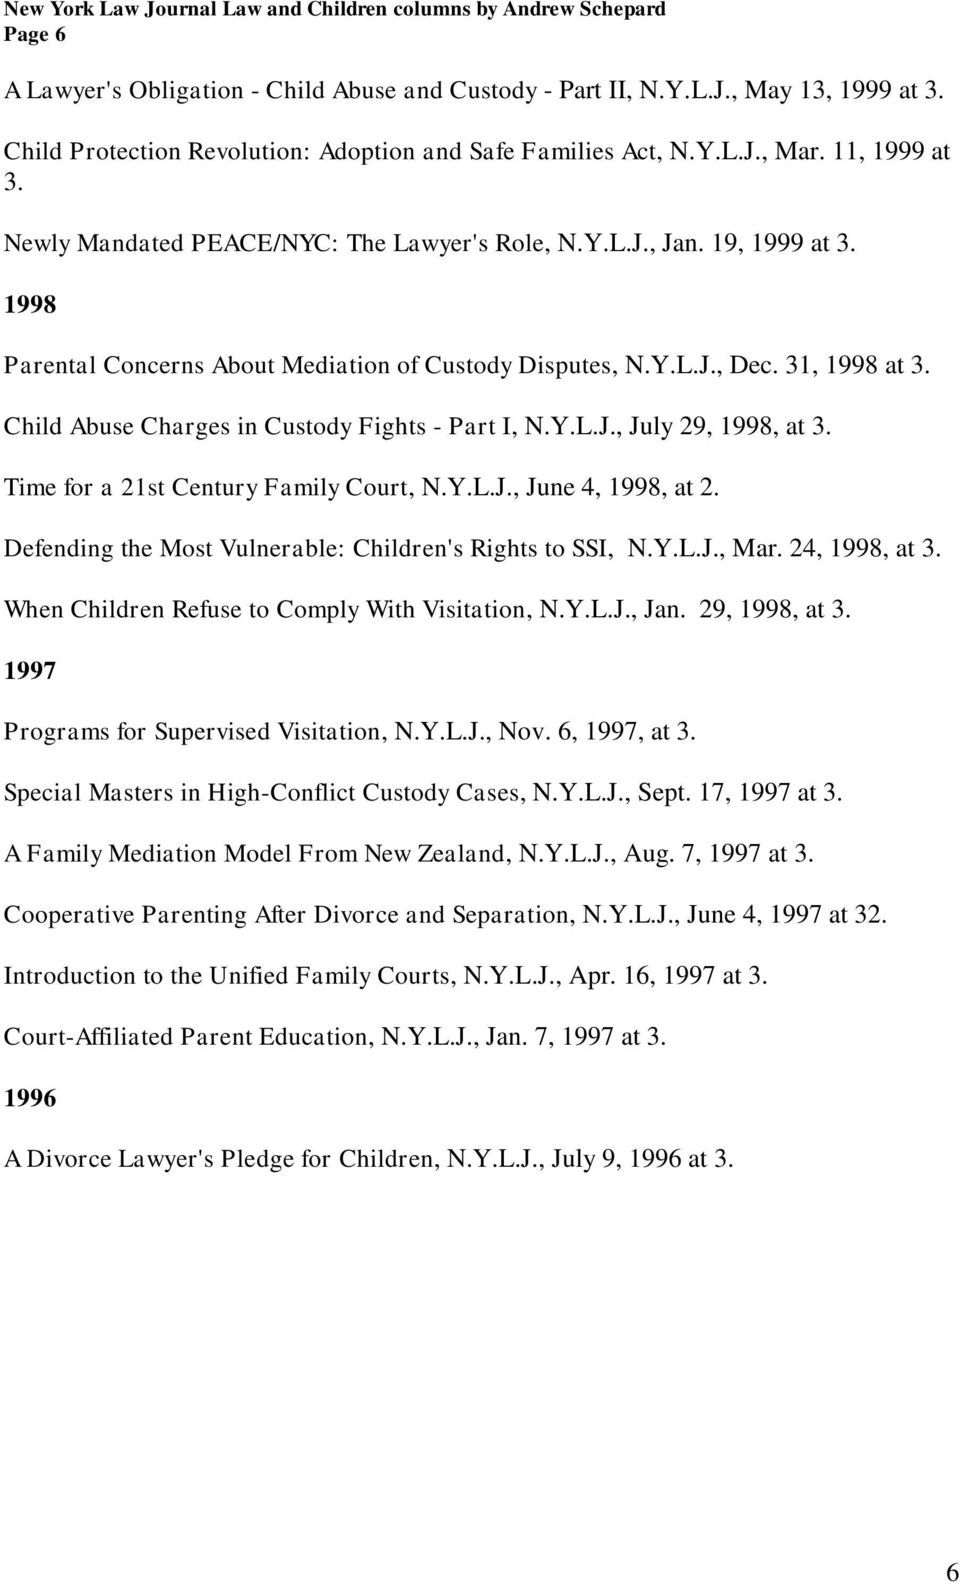 Child Abuse Charges in Custody Fights - Part I, N.Y.L.J., July 29, 1998, at 3. Time for a 21st Century Family Court, N.Y.L.J., June 4, 1998, at 2.